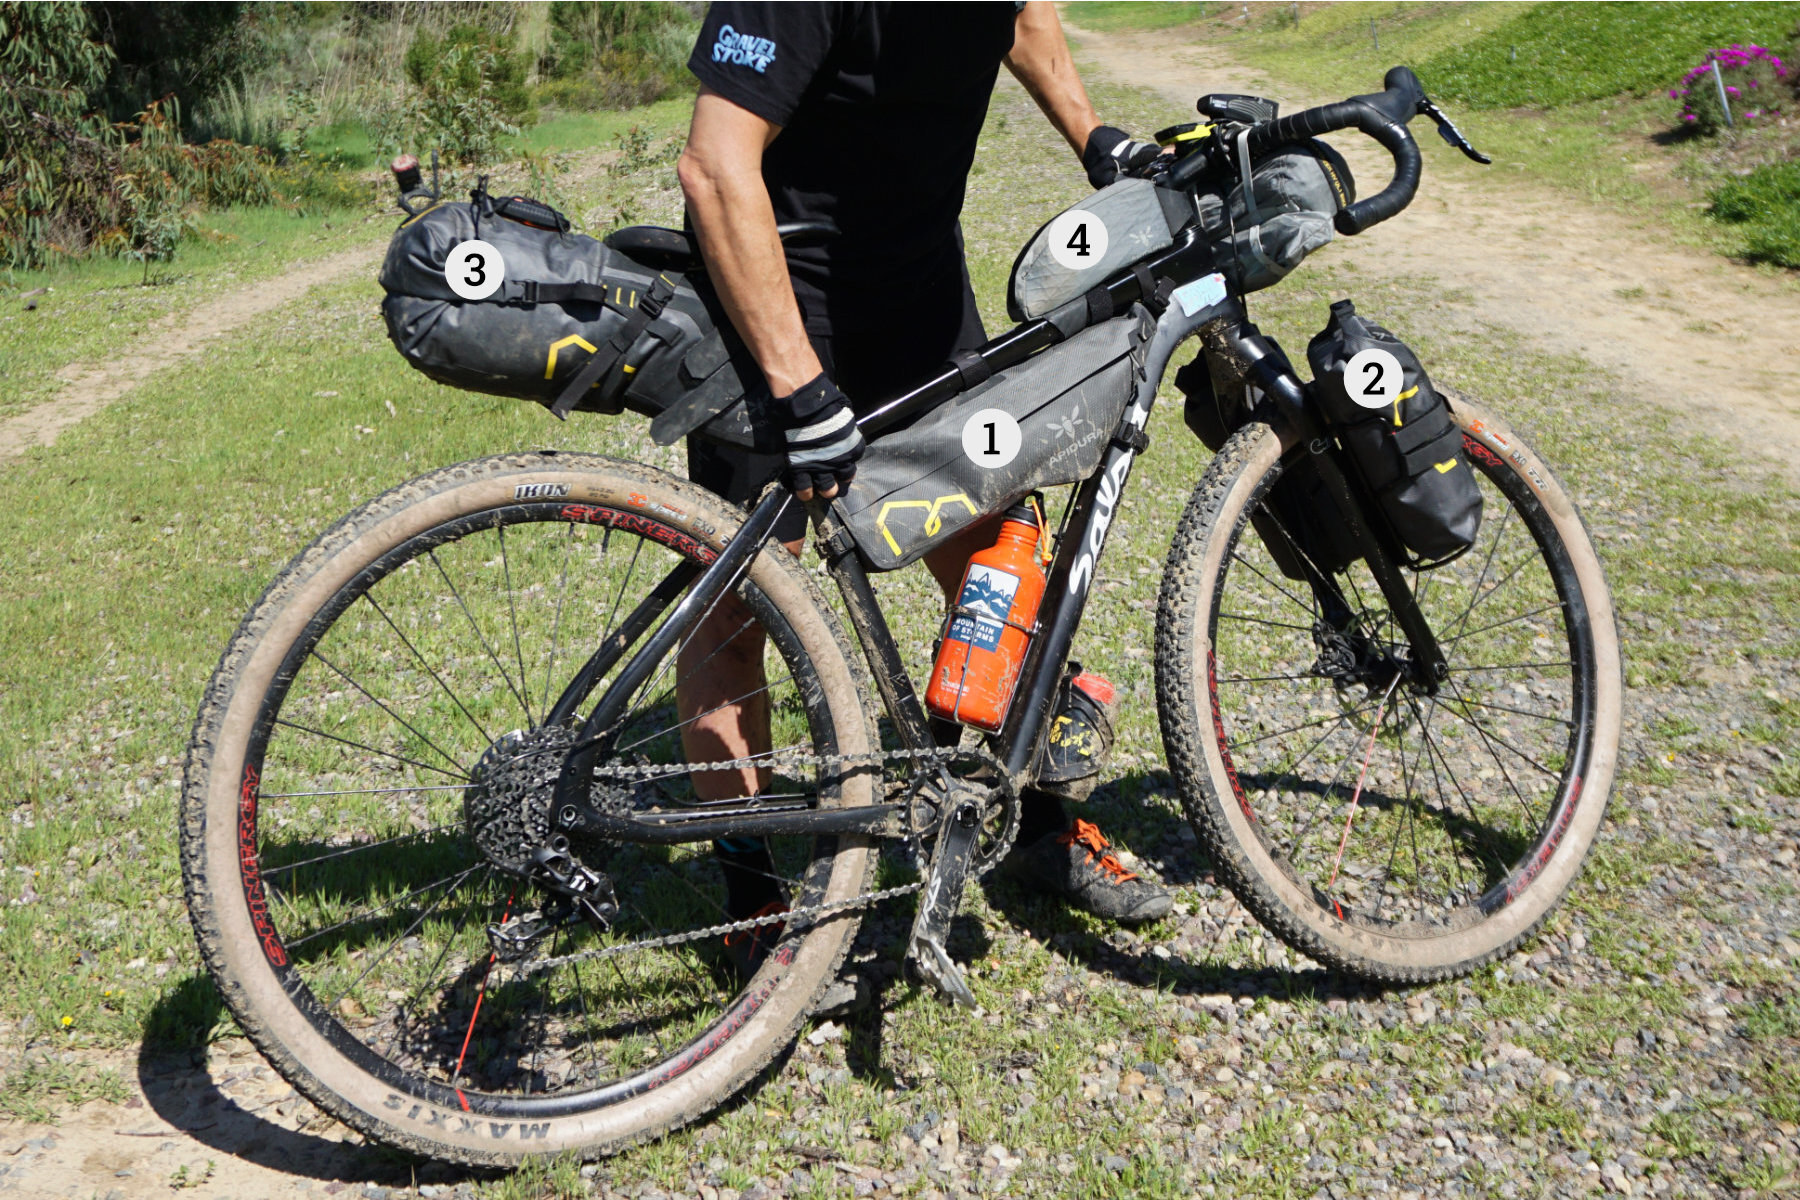 Apidura Expedition Series Bikepacking Gear Review